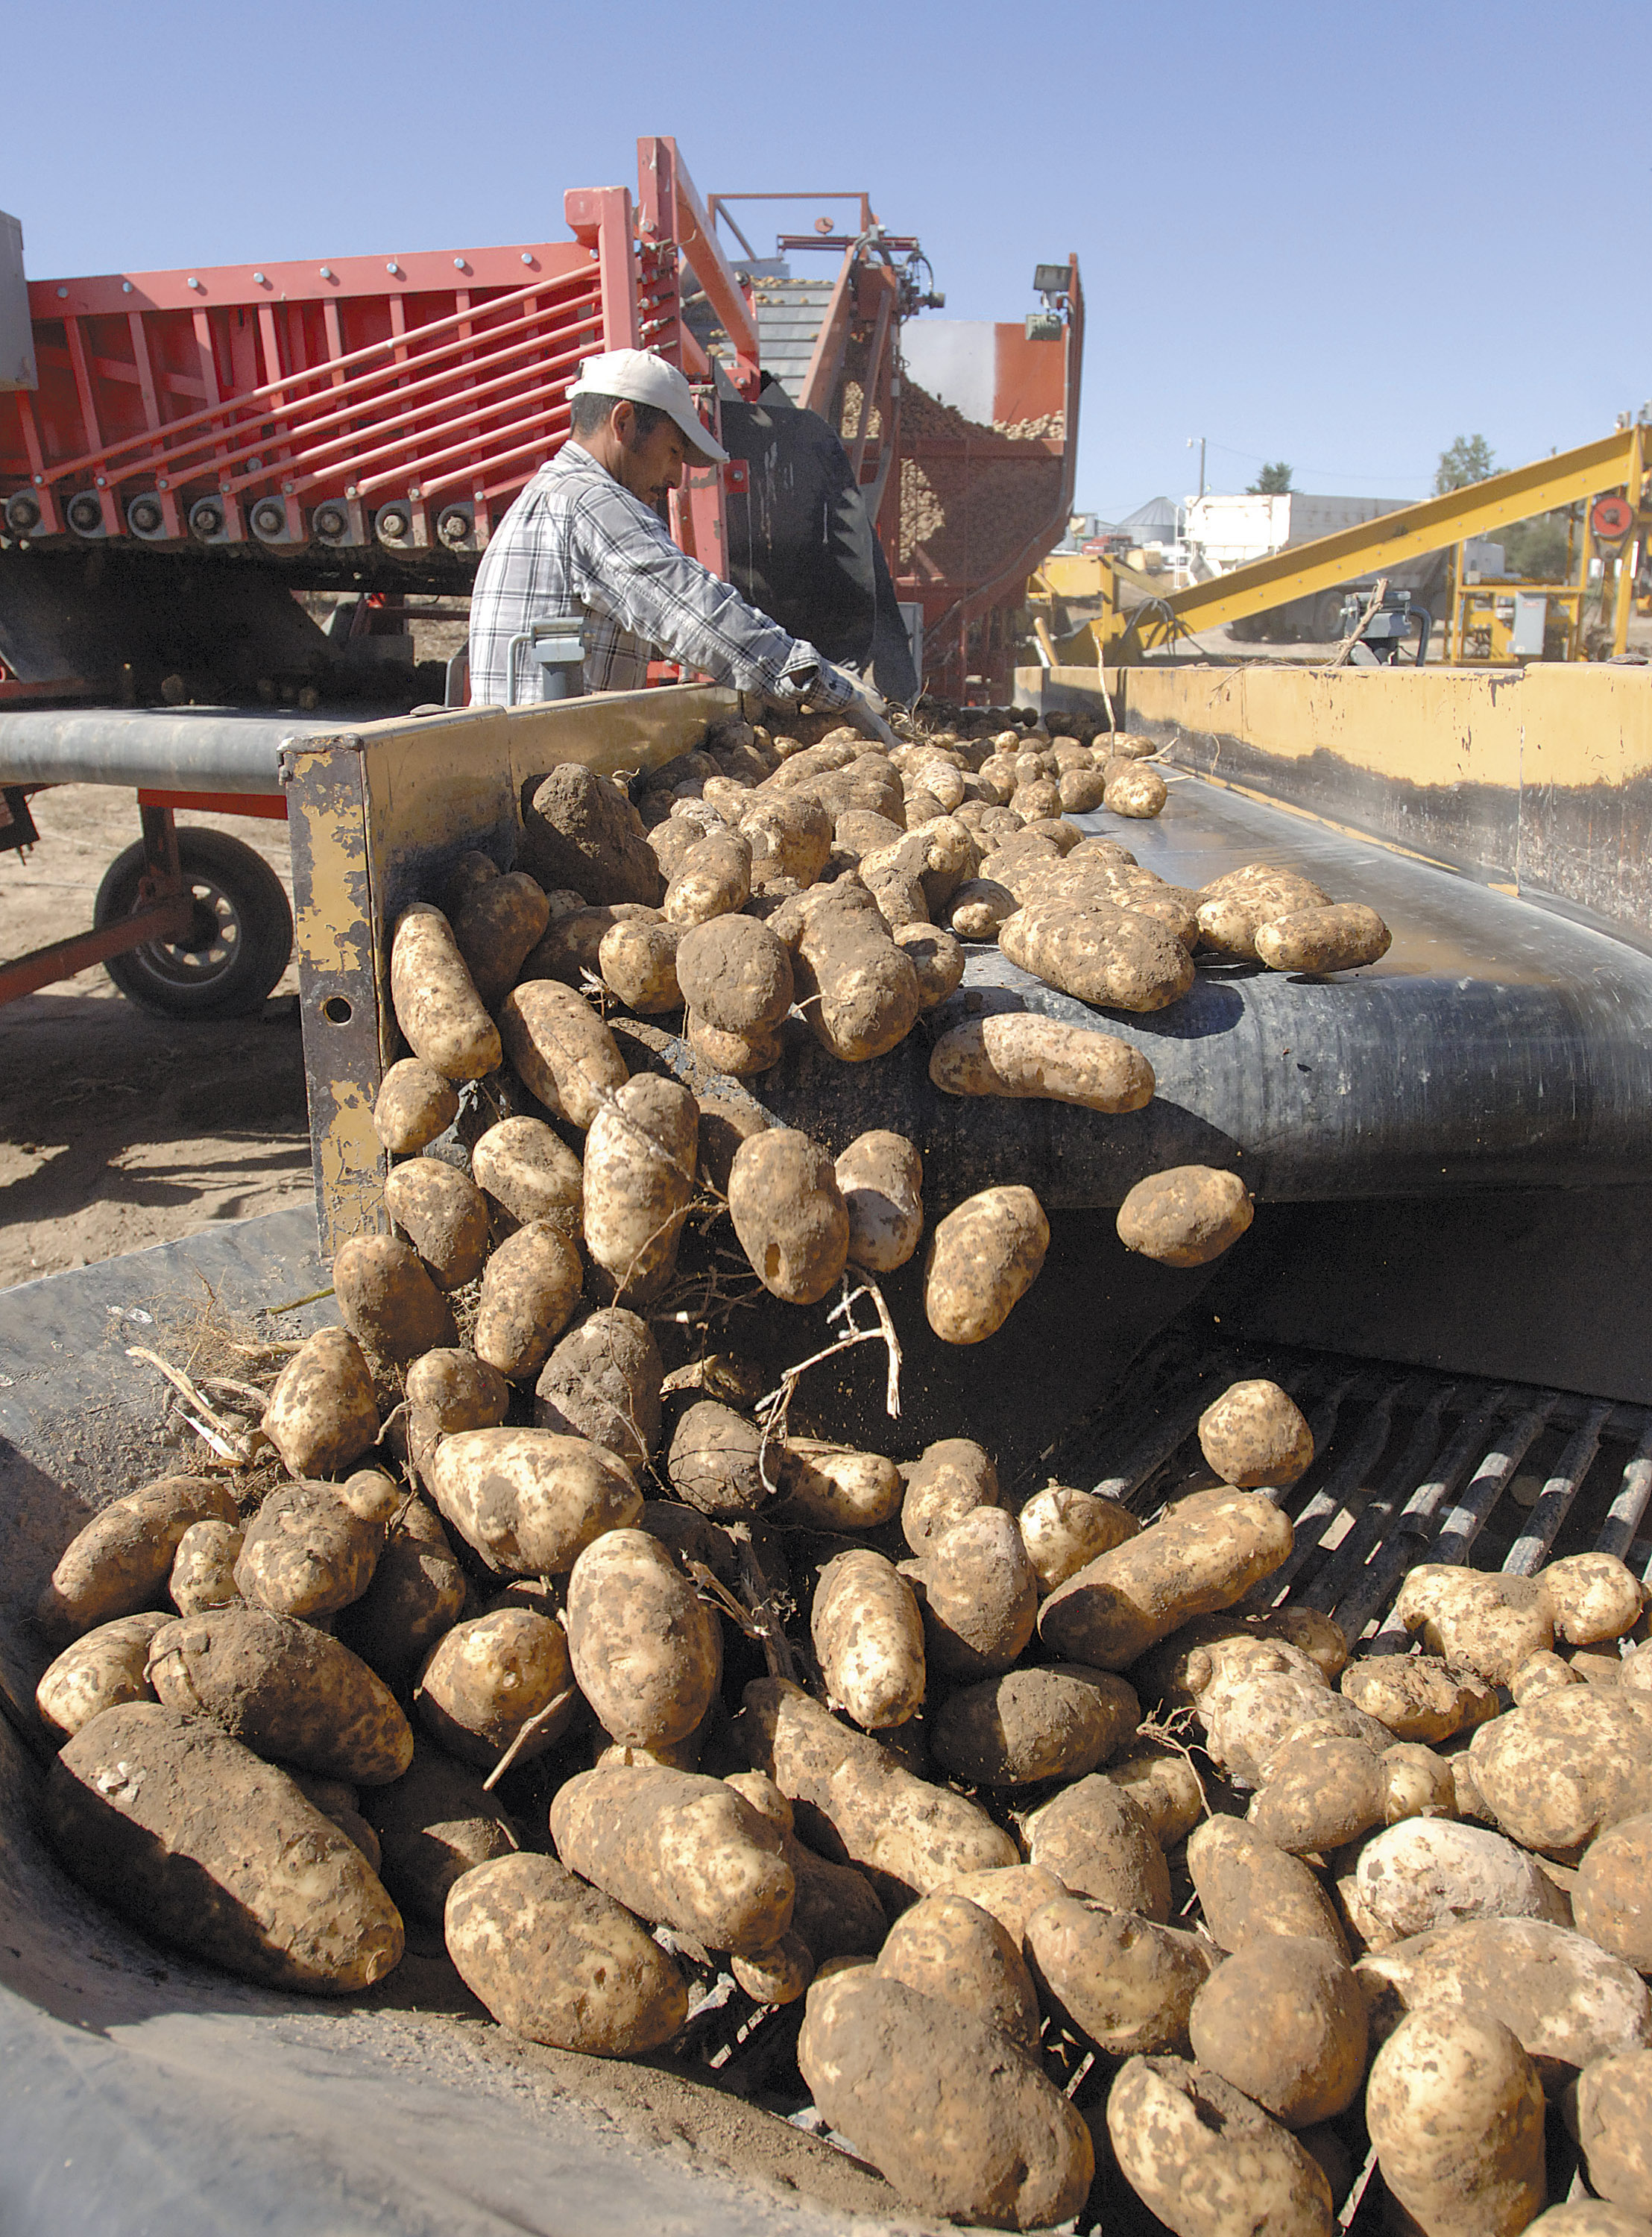 Organic potatoes are harvested at Holm Farms, west of Idaho Falls, in 2010.